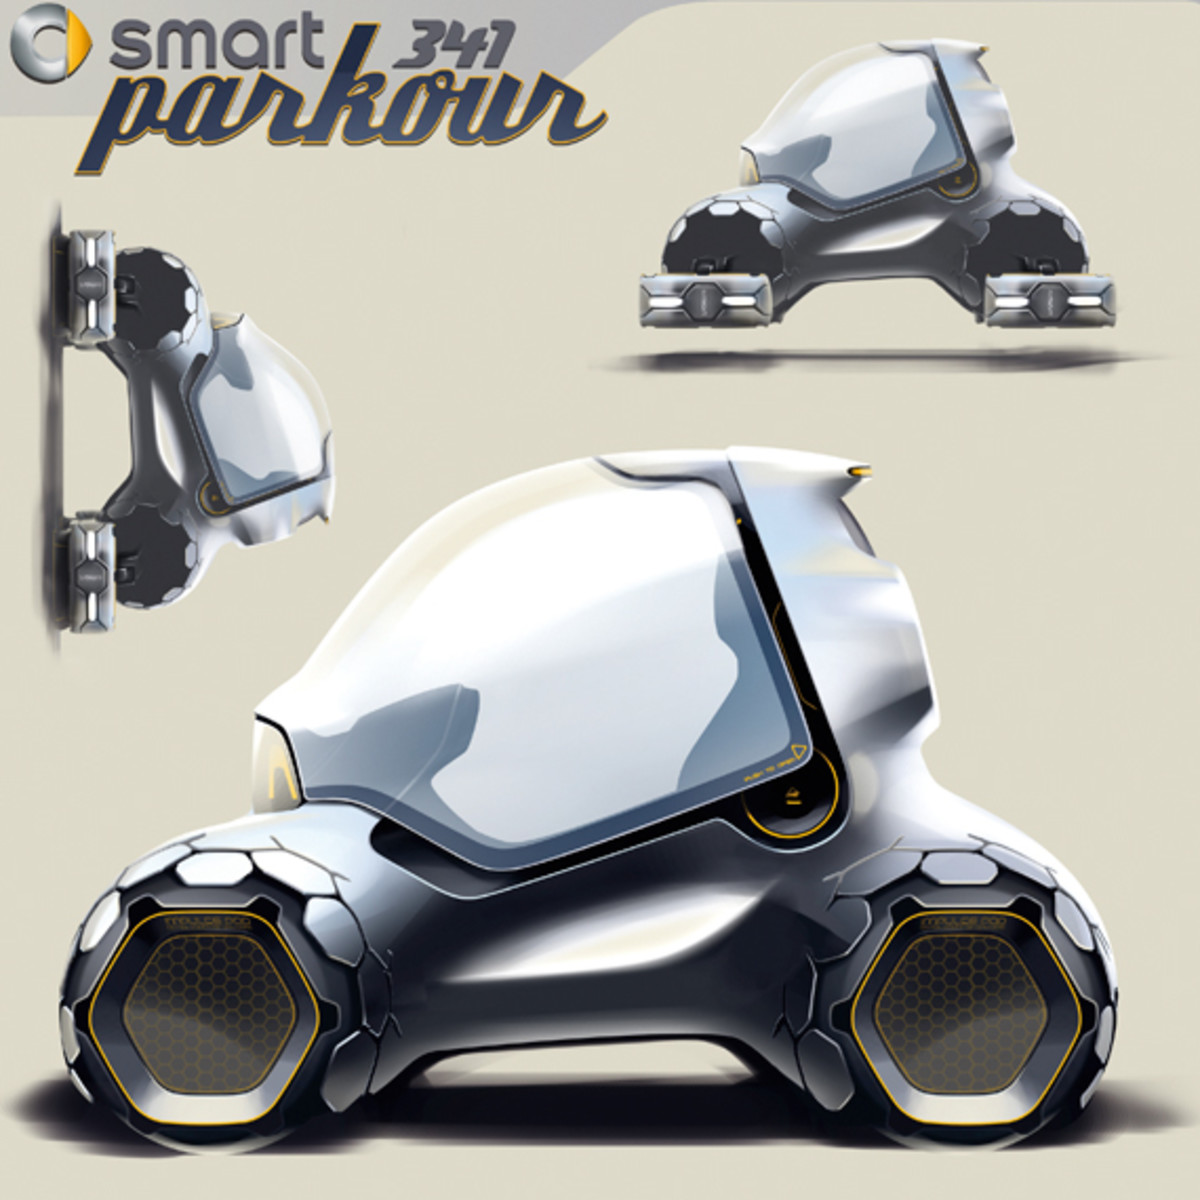 mercedes-benz-advanced-design-2011-la-design-challenge-smart-341-parkour-02